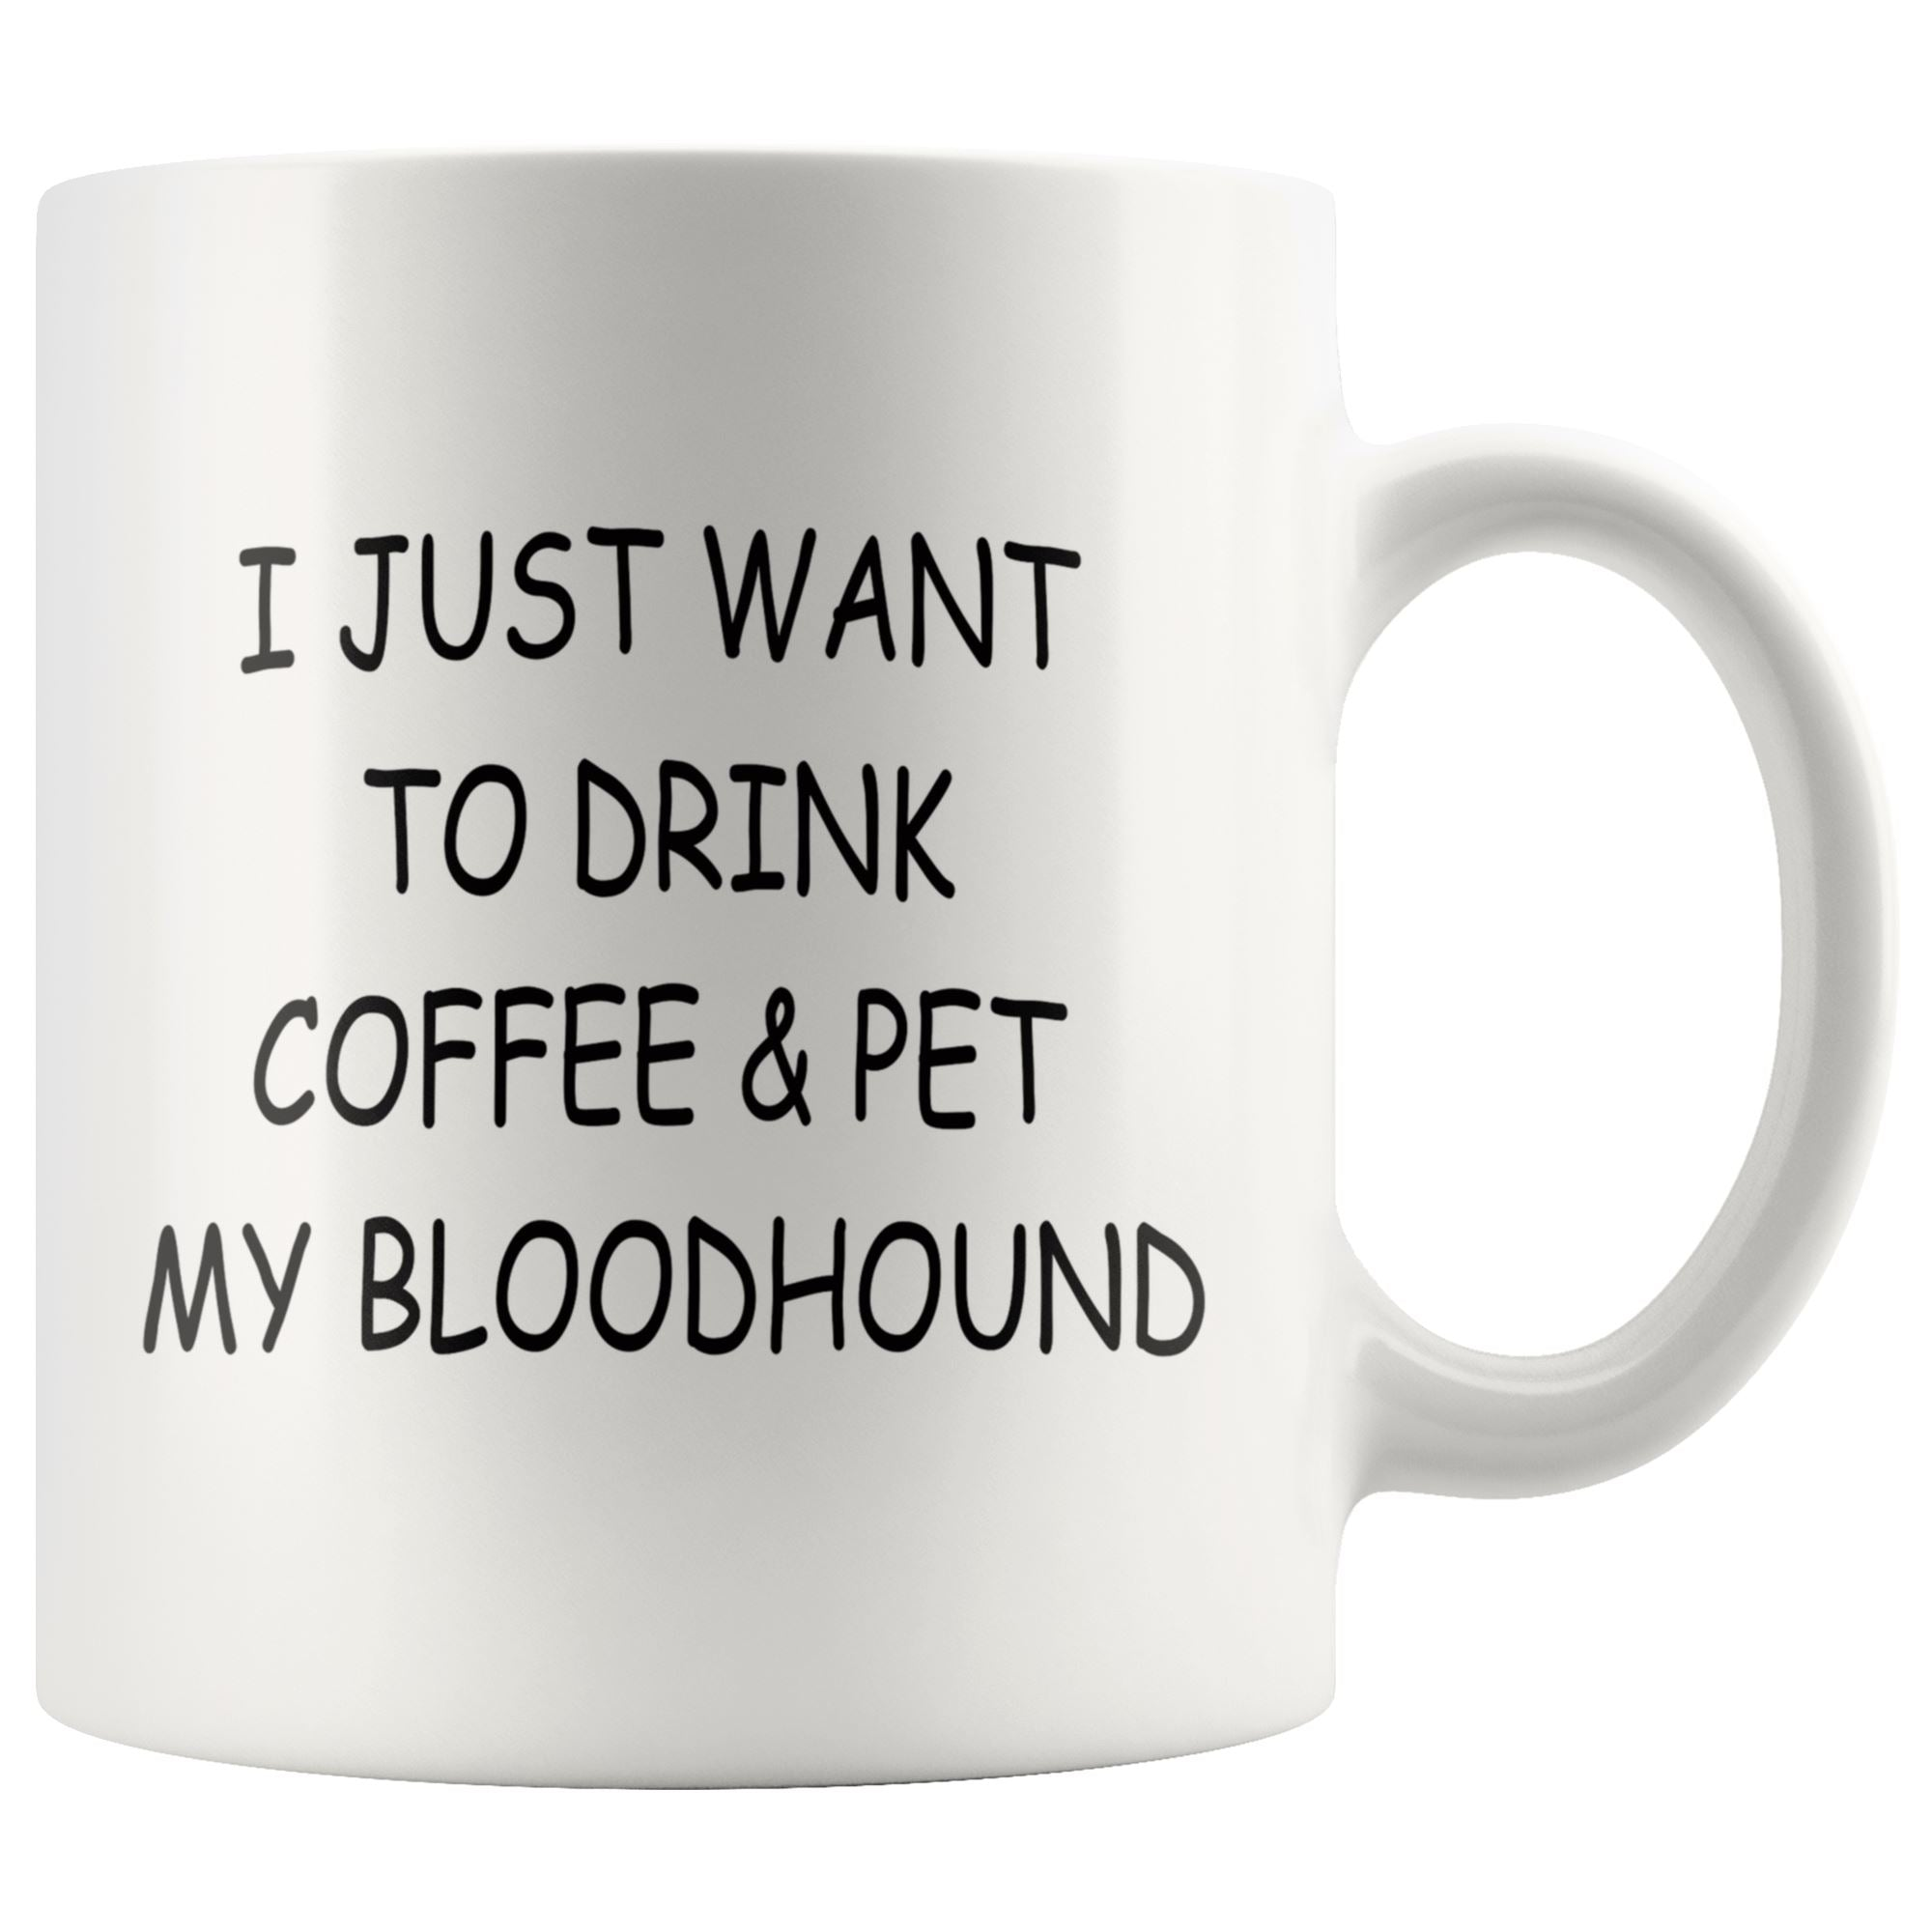 Bloodhound Mug Drinkware teelaunch 11oz Mug